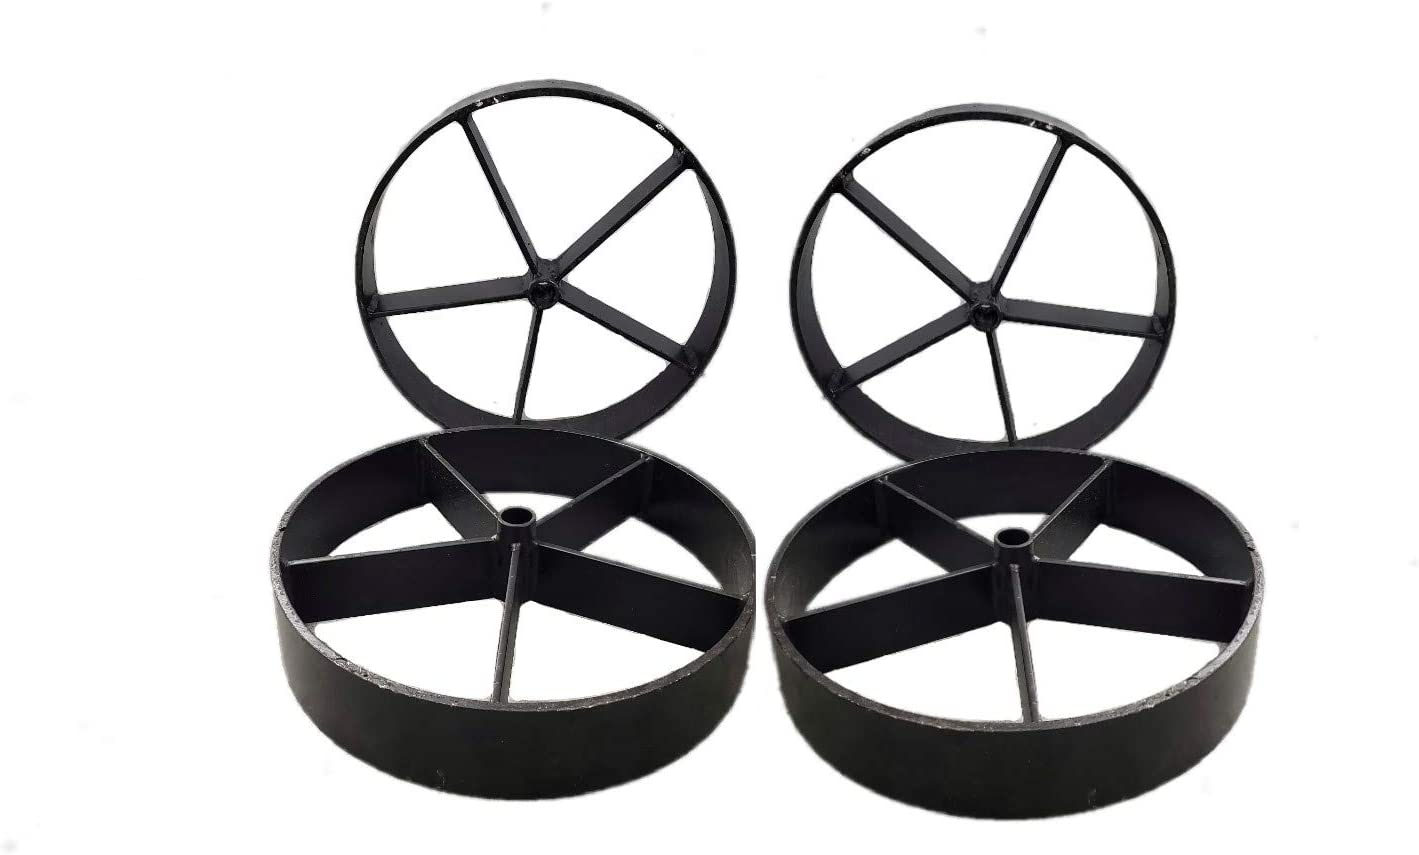 Helotes Pits 12.75 Steel Wagon Wheels for Barbecue Pit 4, 12.75 Set of 4